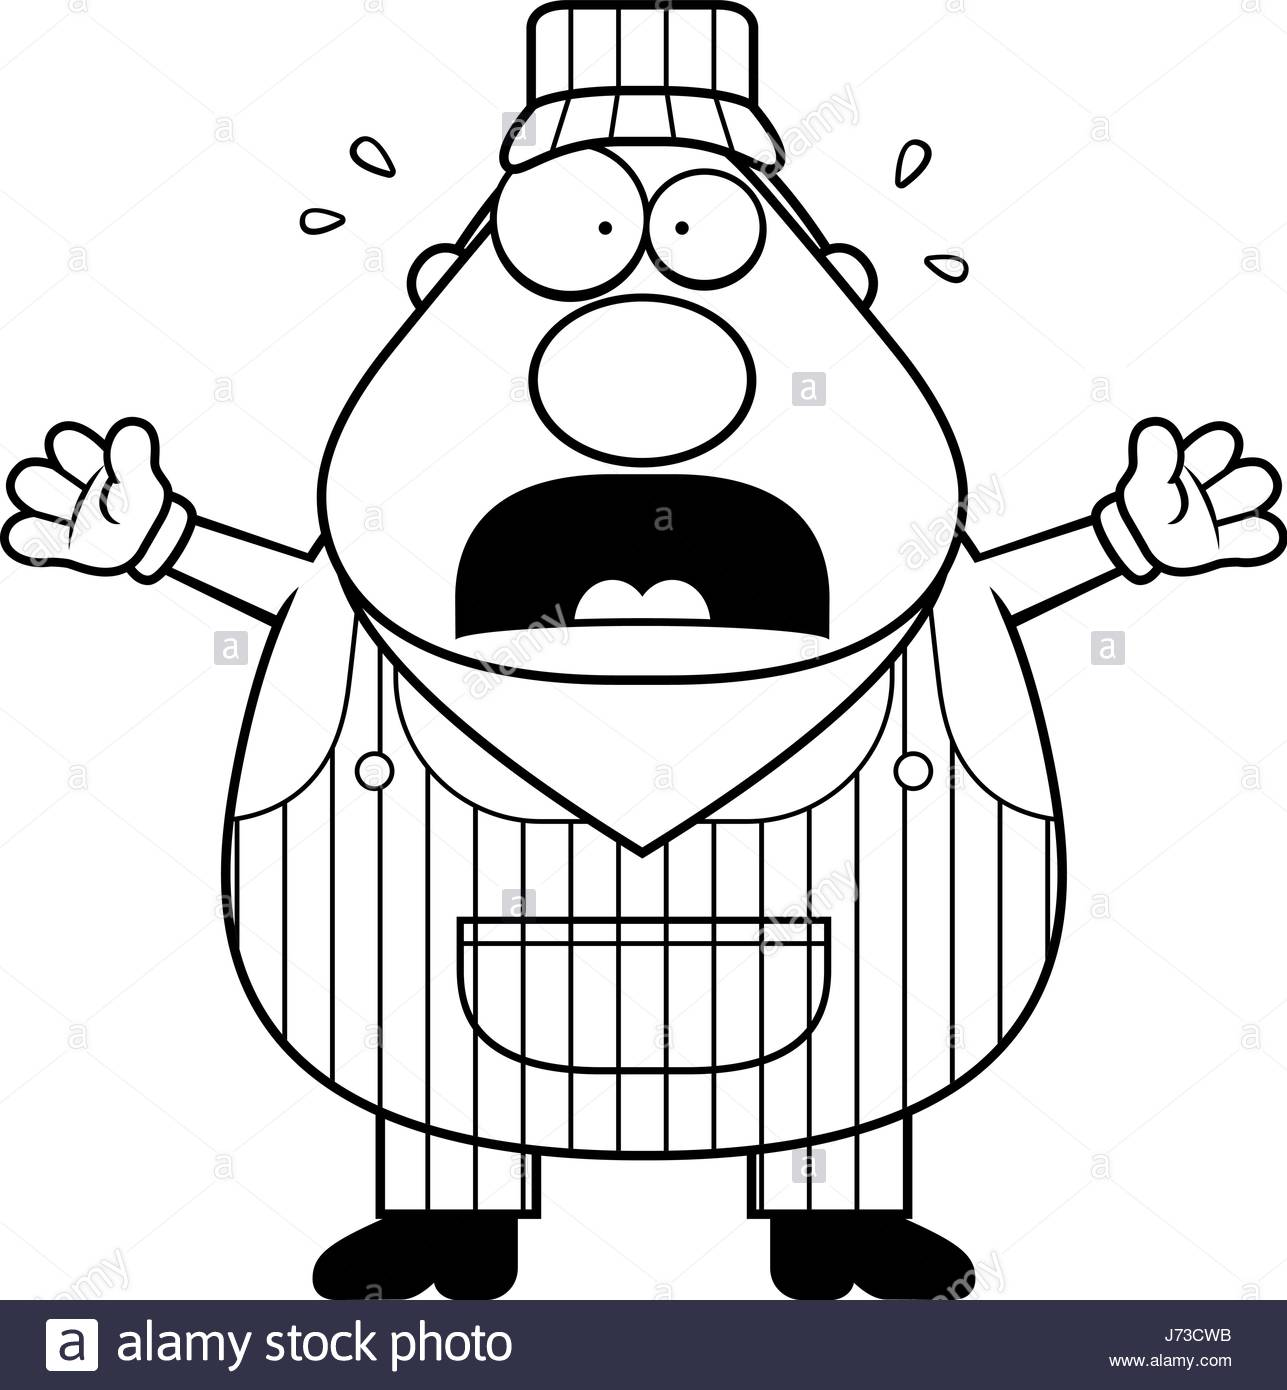 1287x1390 A Cartoon Train Conductor Worried And Panicking Stock Vector Art